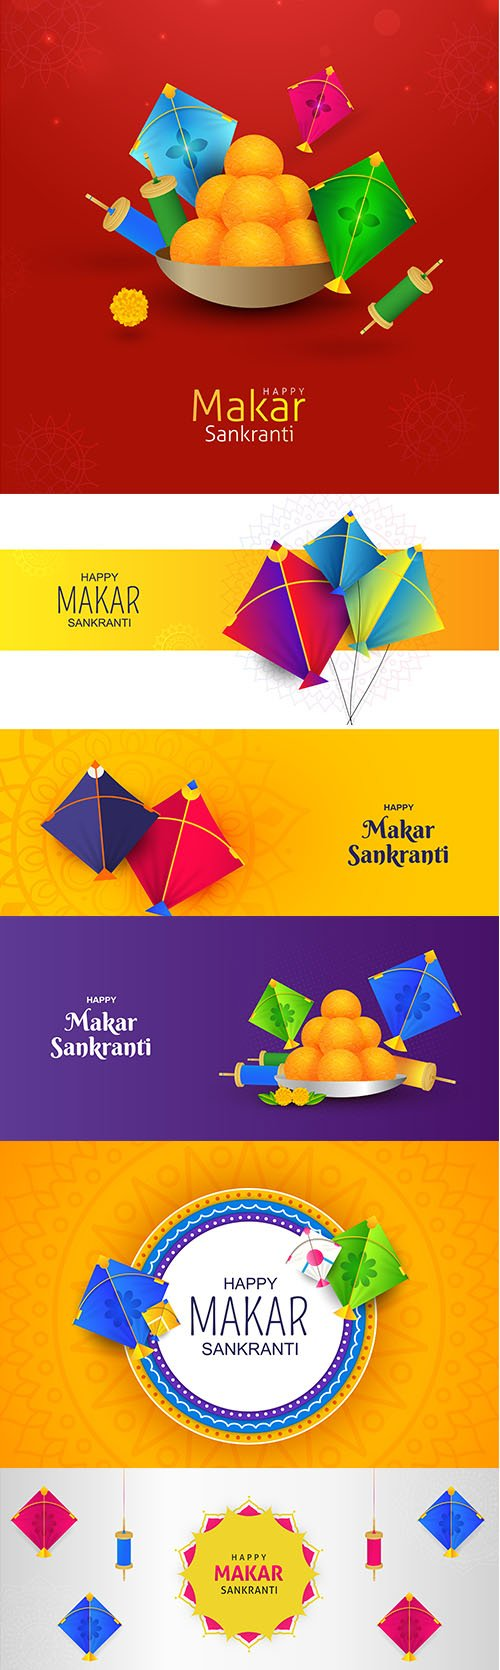 Happy makar sankranti greeting background